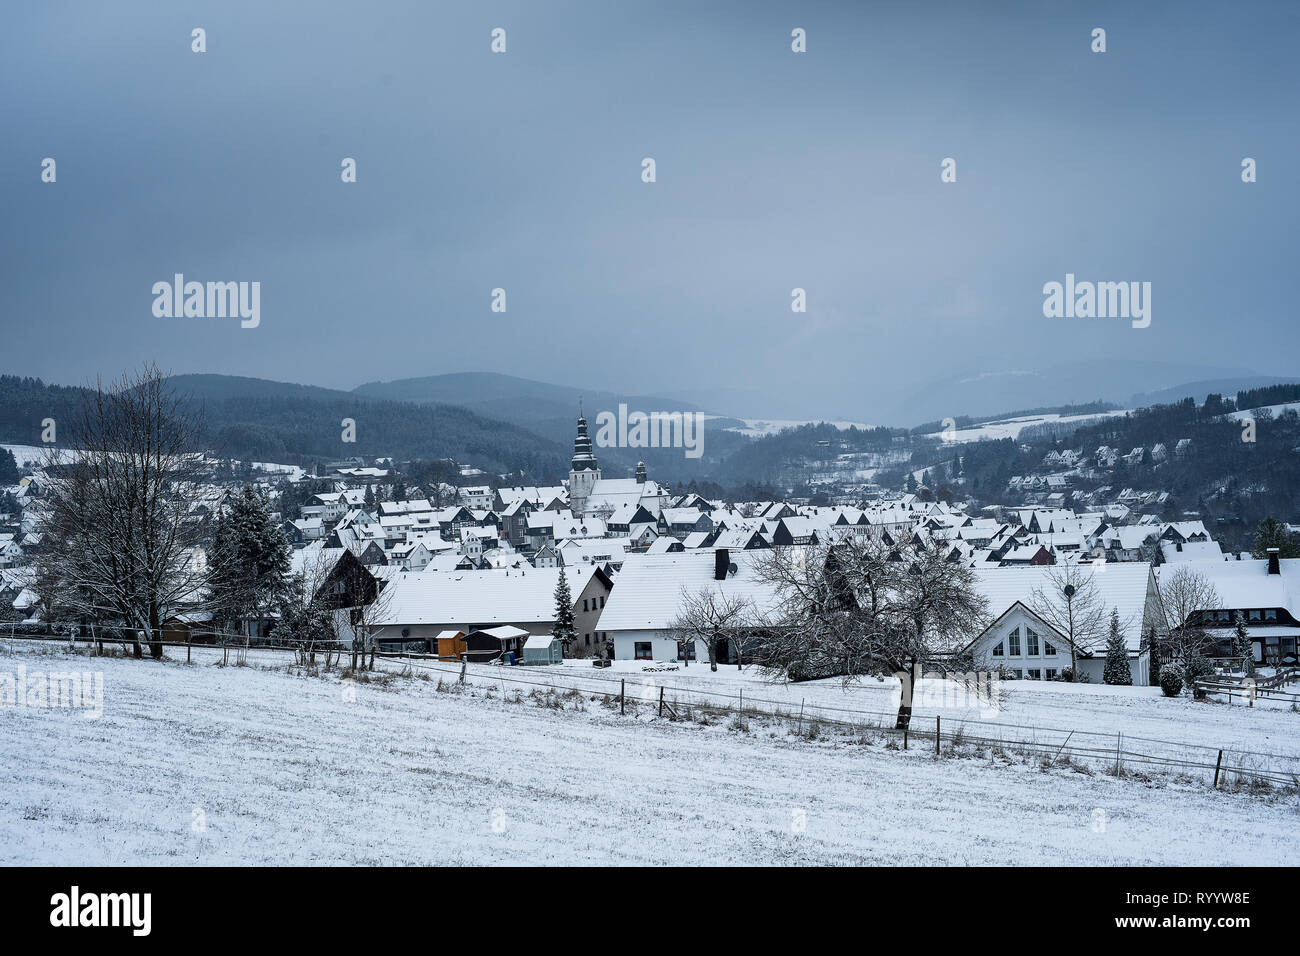 Landscape from the german city Hallenberg - Stock Image